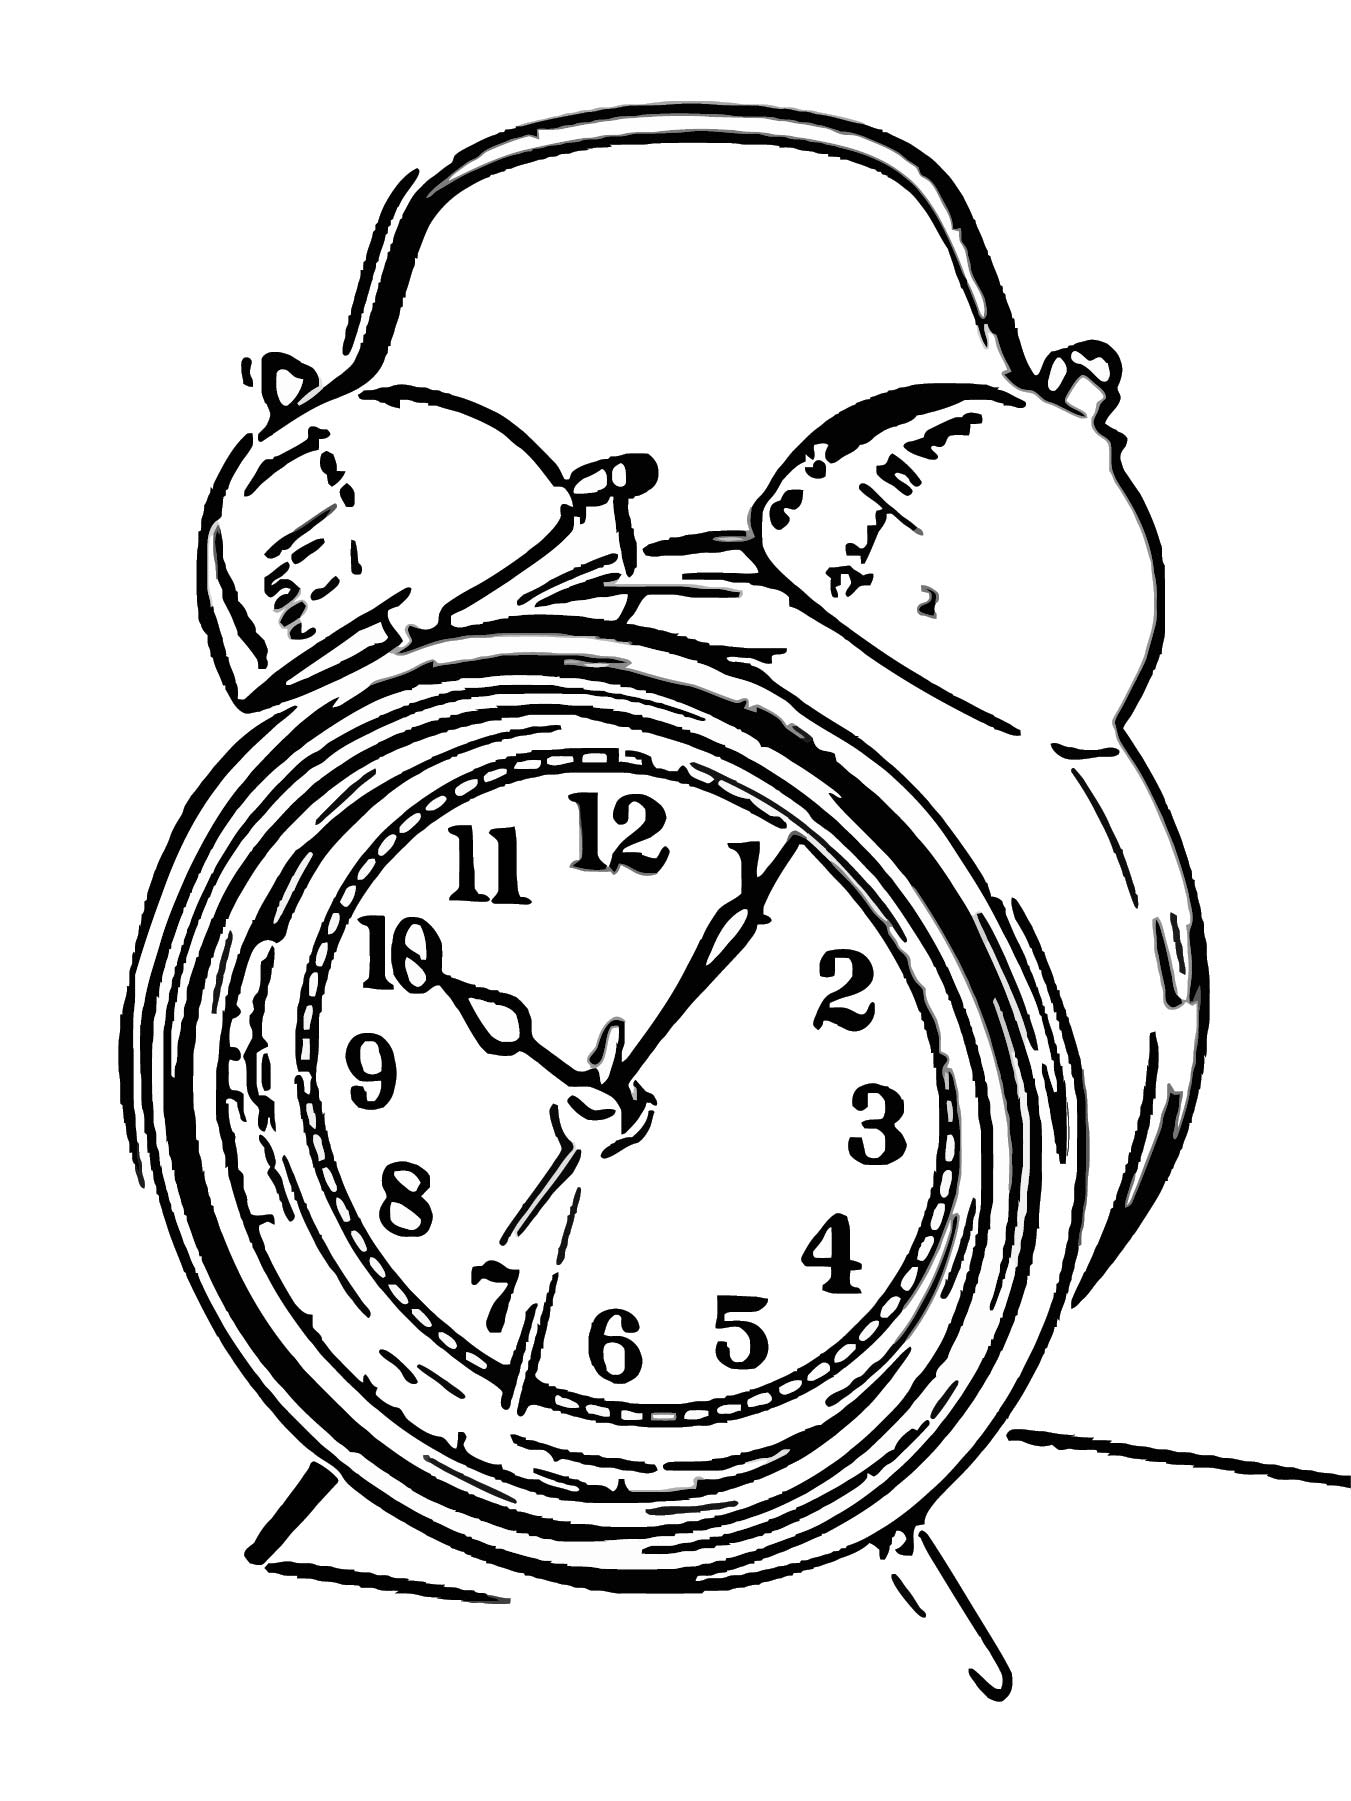 Alarm Clocks 201011 Free Printable 05 Cartoonized Free Printable Coloring Page